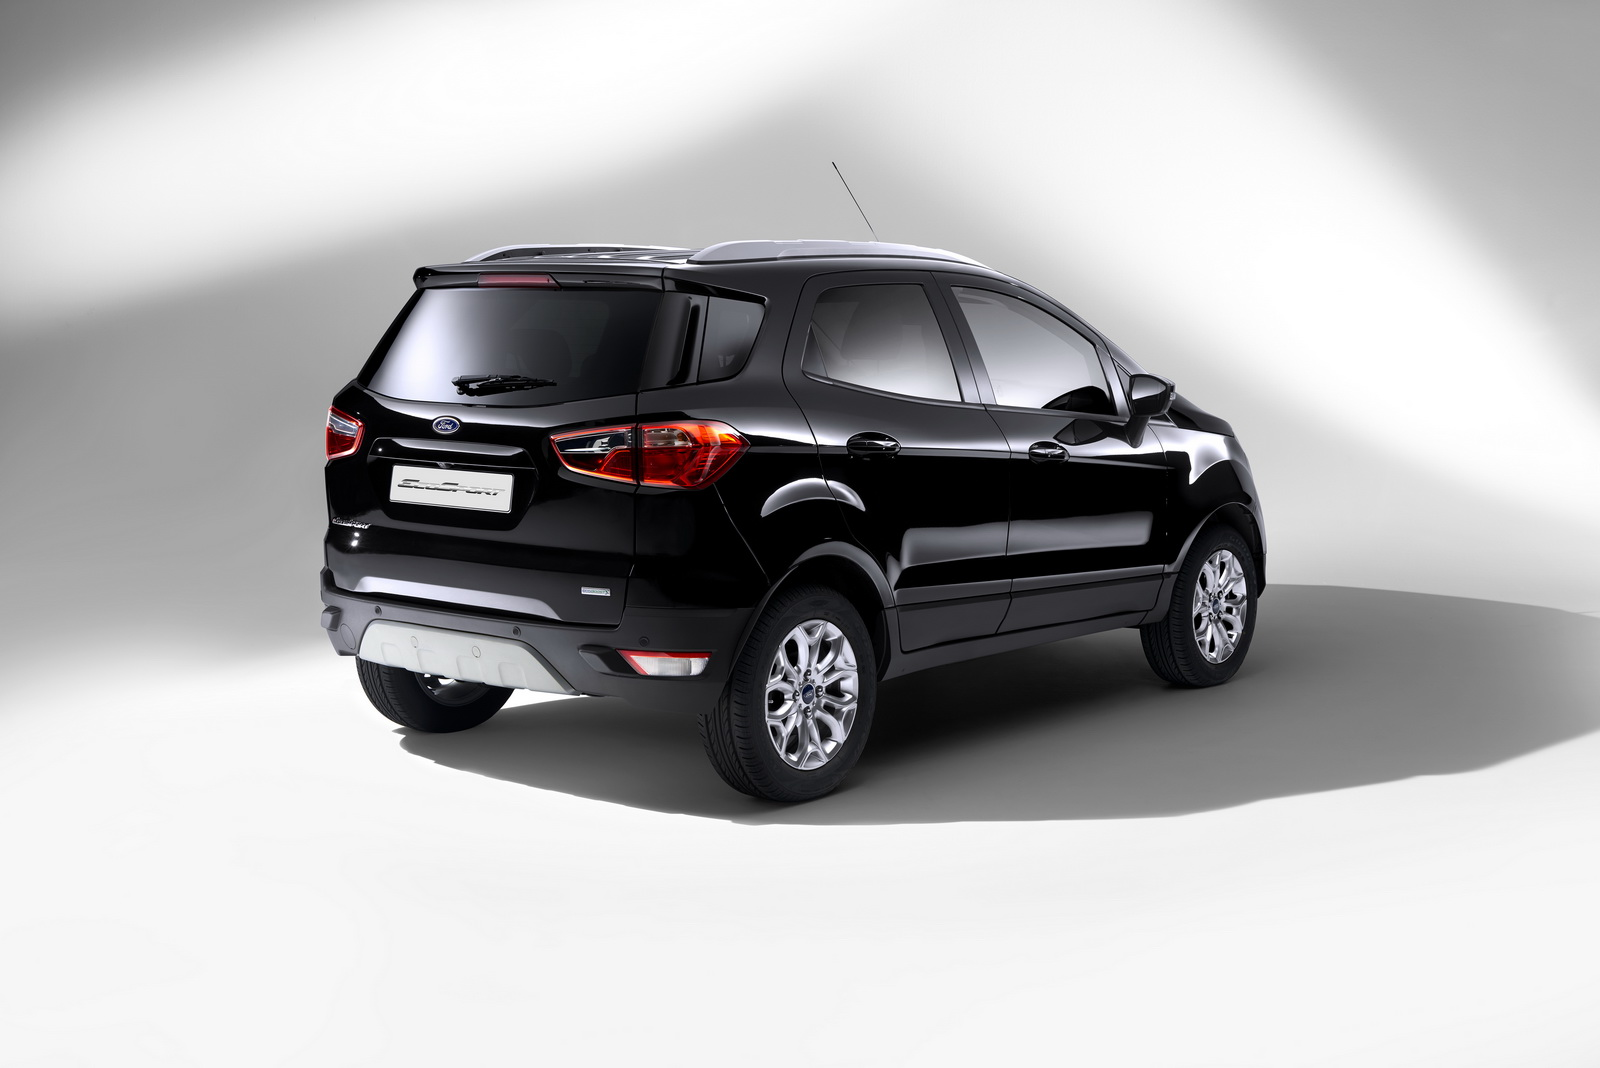 Ford Ecosport SUV Receives Minor Updates 15 TDCi Now Rated At 95PS